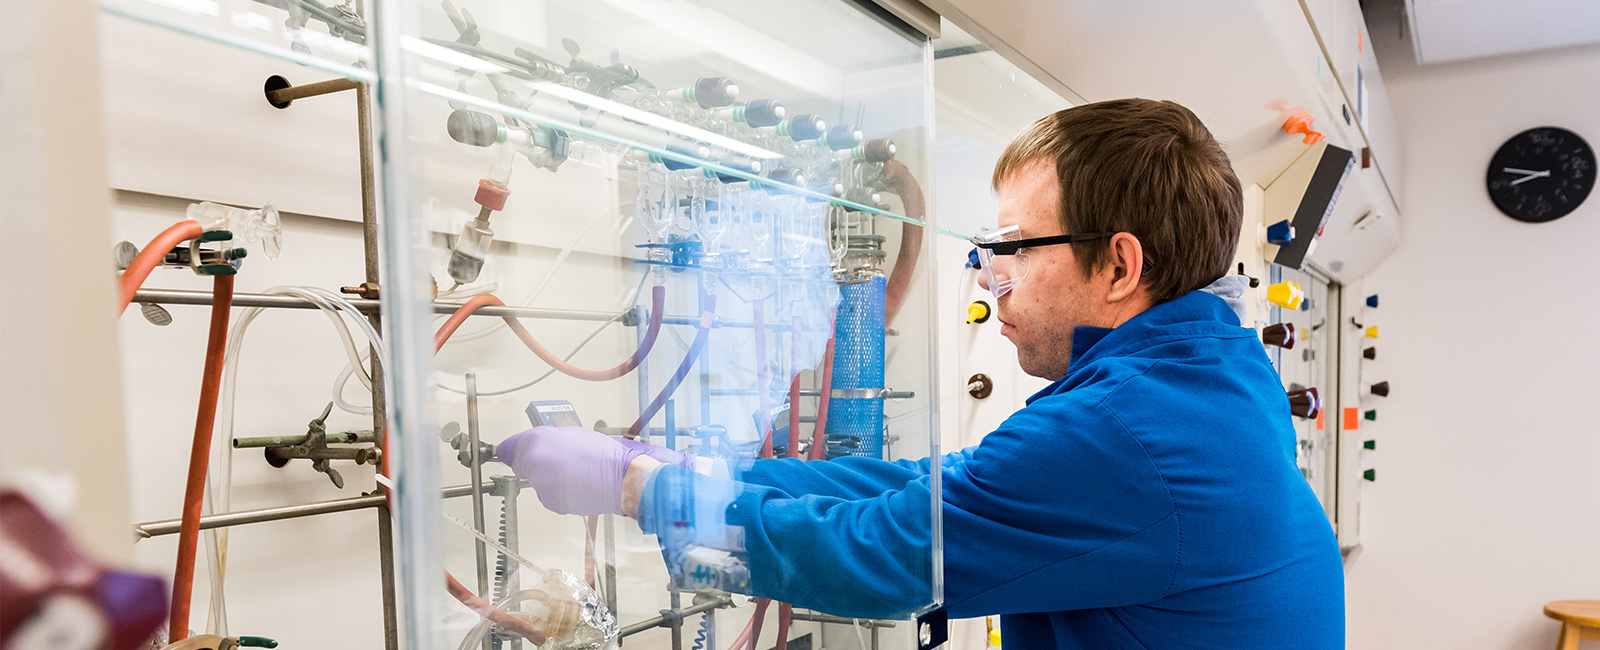 A graduate student conducts research at a fume hood.